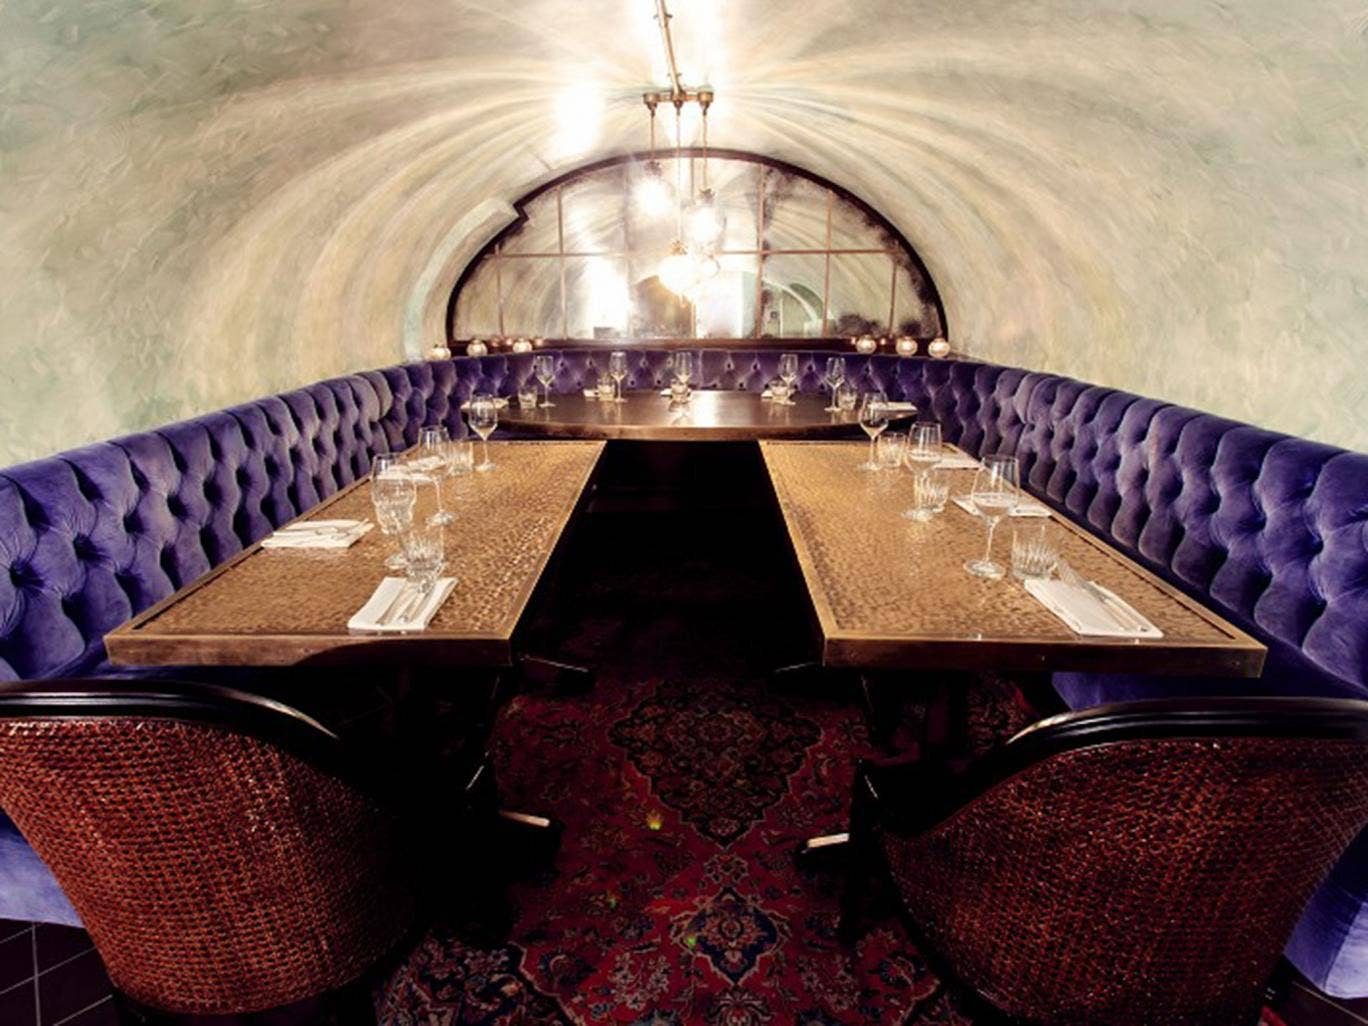 Gymkhana in London's Mayfair is the first Indian restaurant to win the award